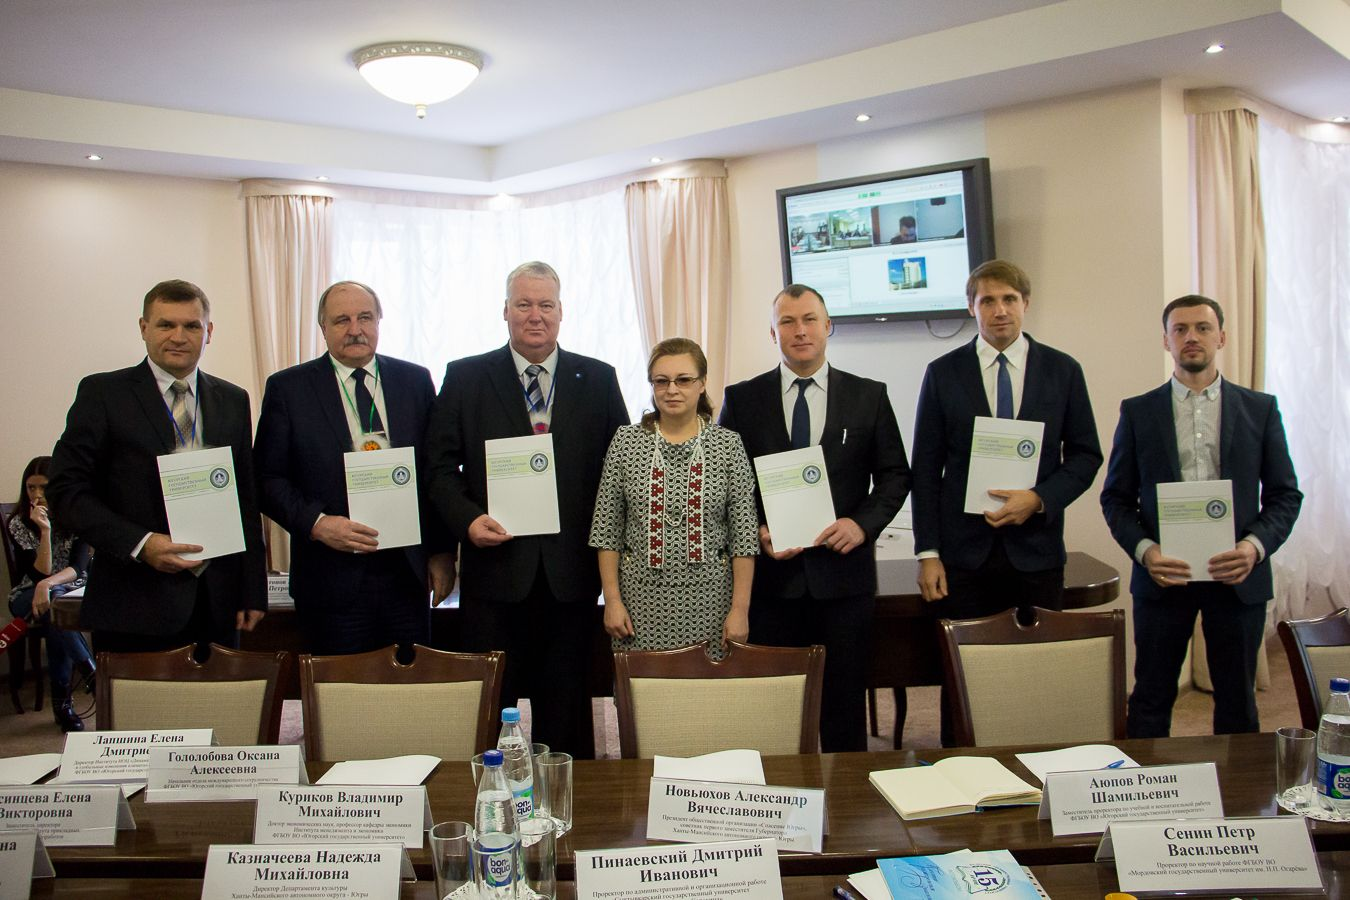 AFUU Rectors Meeting at Yugra State University